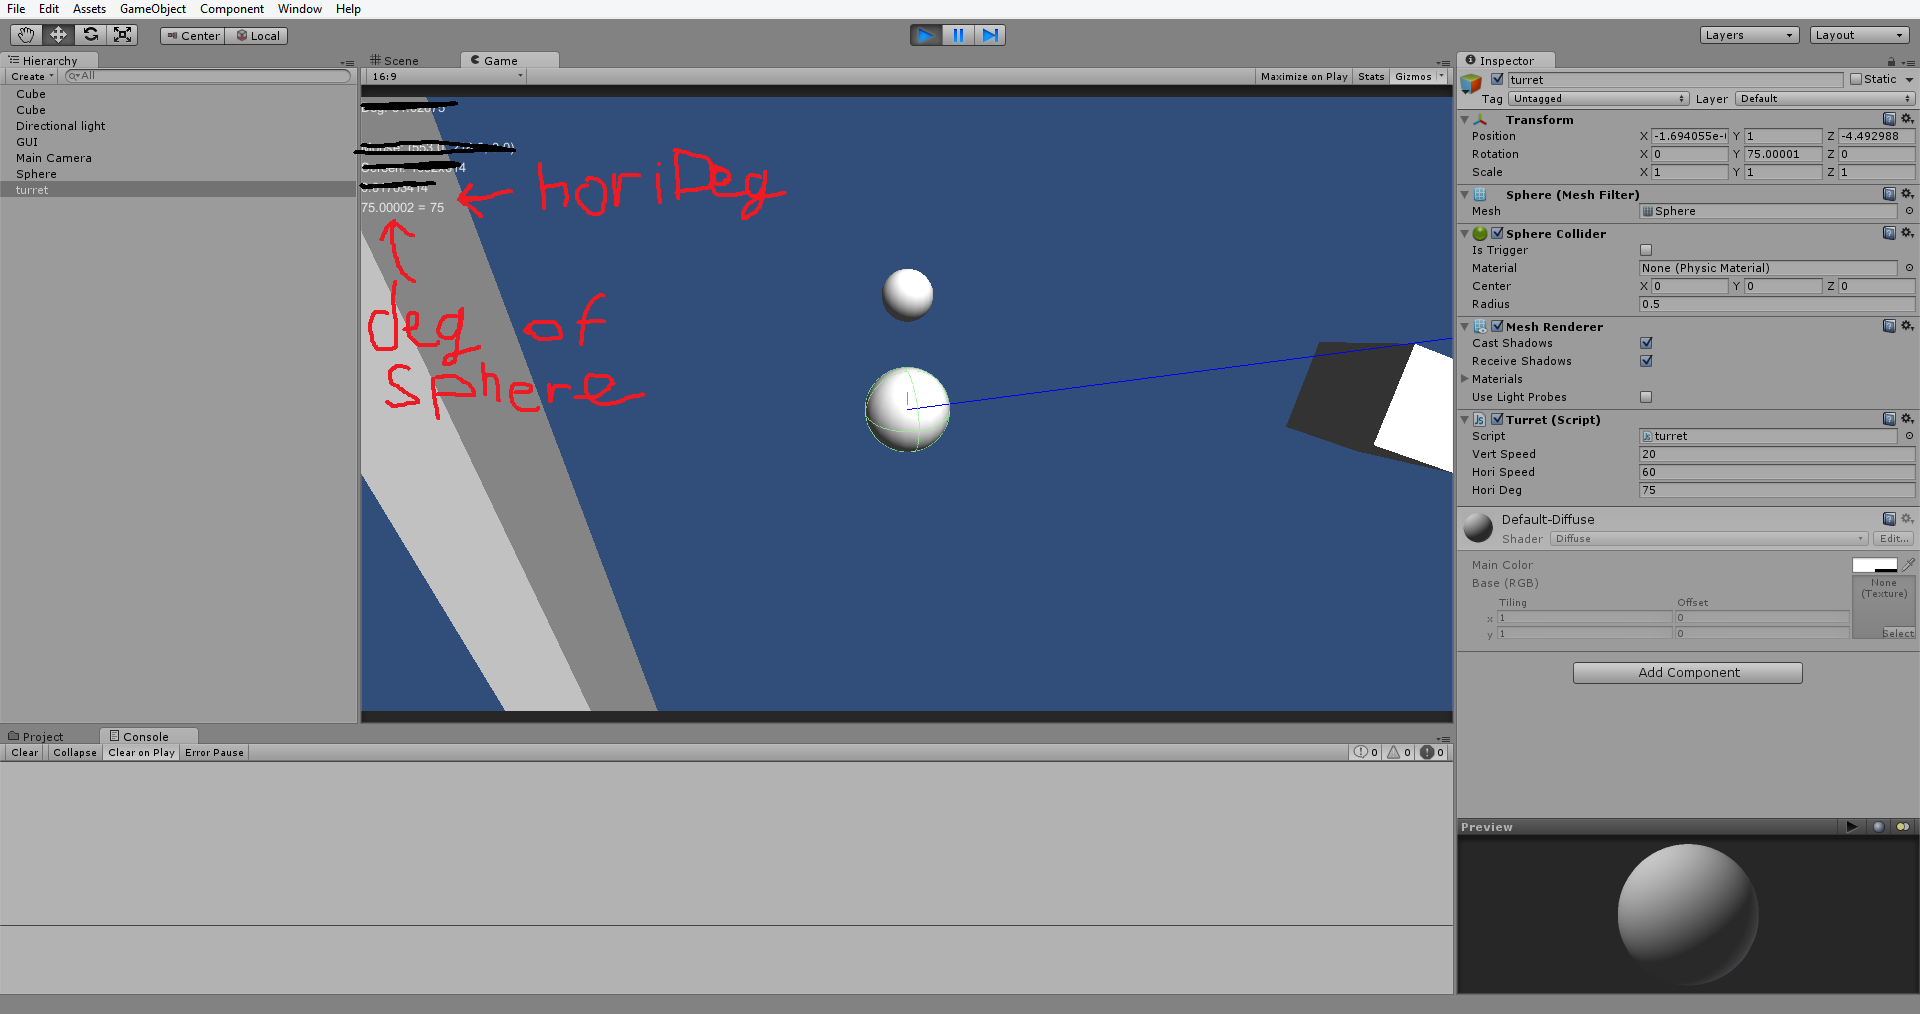 transform rotation eulerAngles not accuarate? - Unity Answers